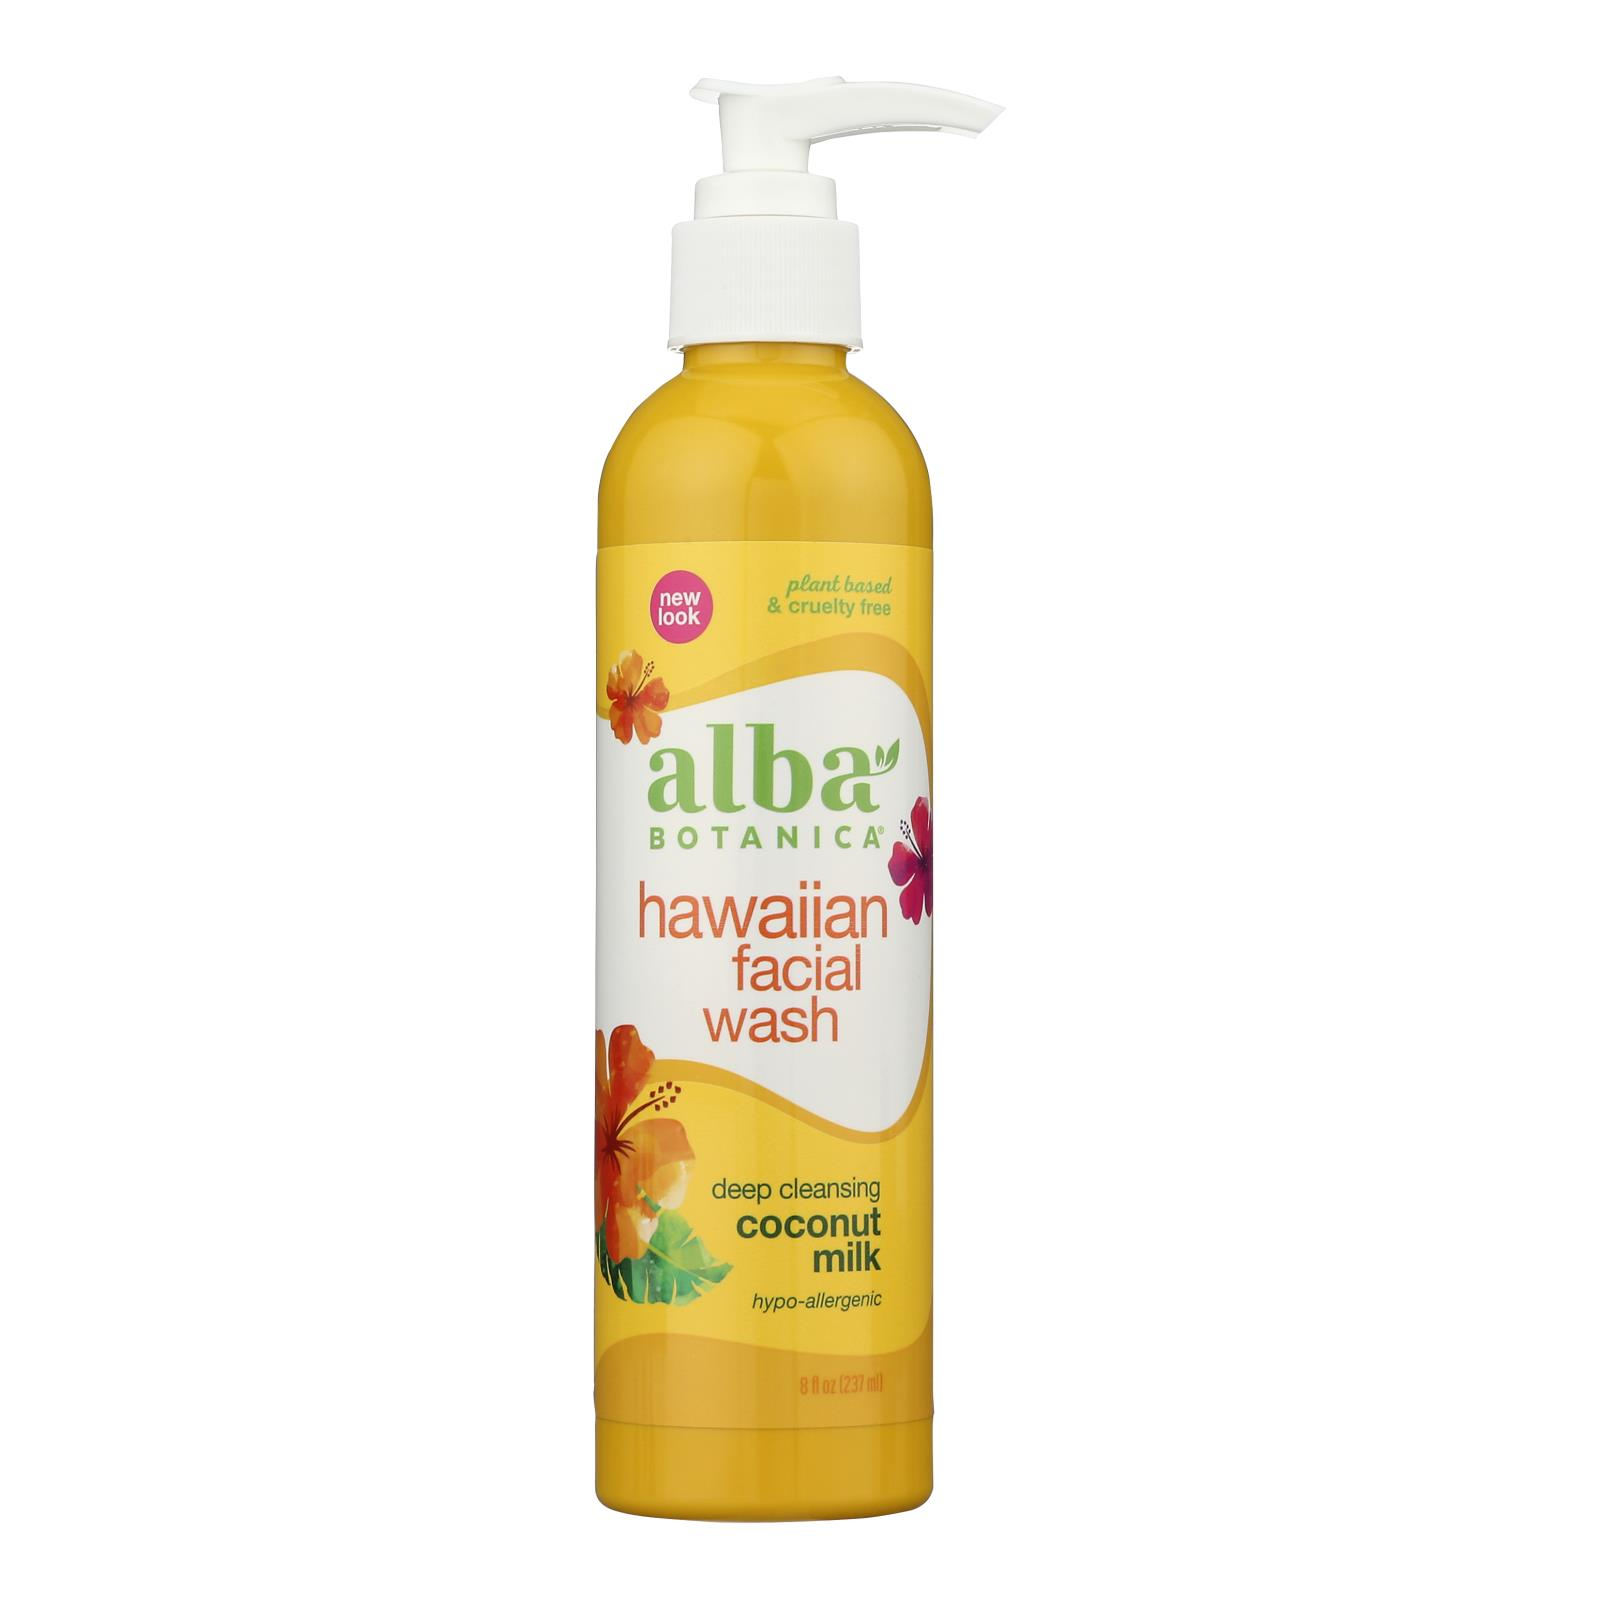 Alba Botanica - Hawaiian Facial Wash Coconut Milk - 8 fl oz